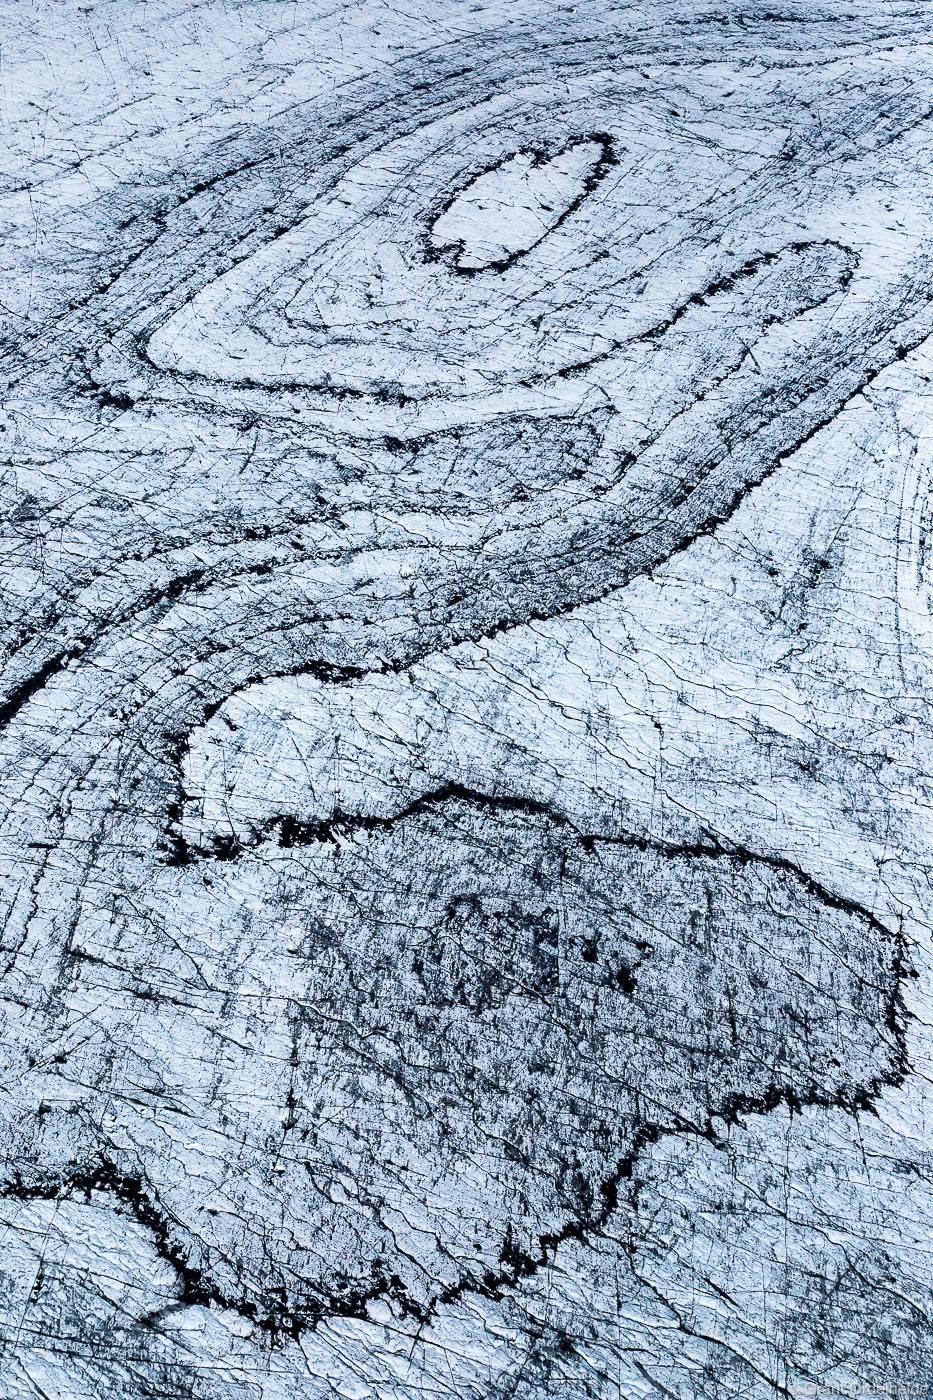 Aerial image of abstract lines and patterns in the Vatnajökull glacier in Iceland.